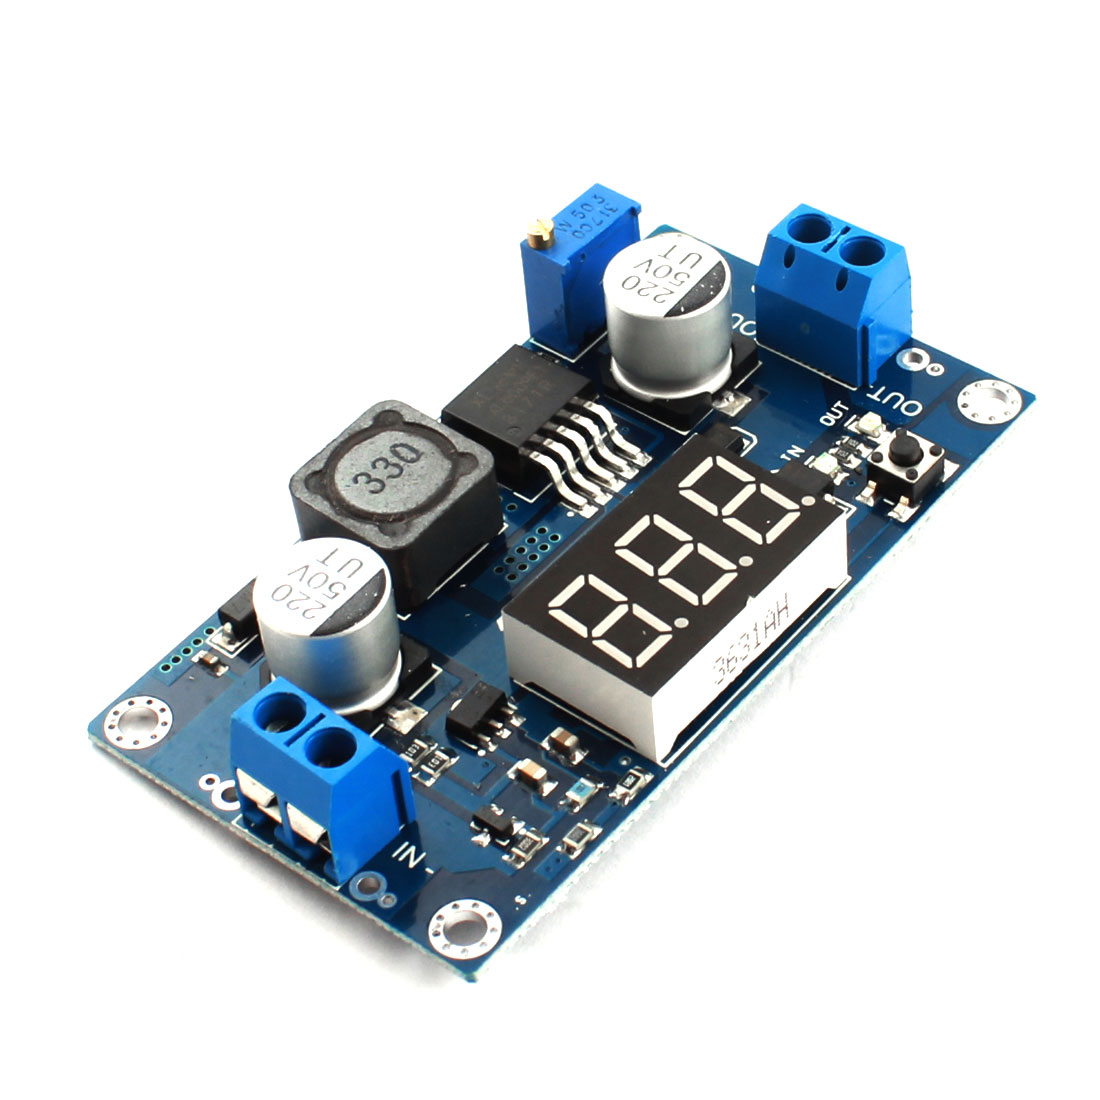 XL6009 4.5-33V Adjustable DC to DC Step Up Boost Module Board w LED Display